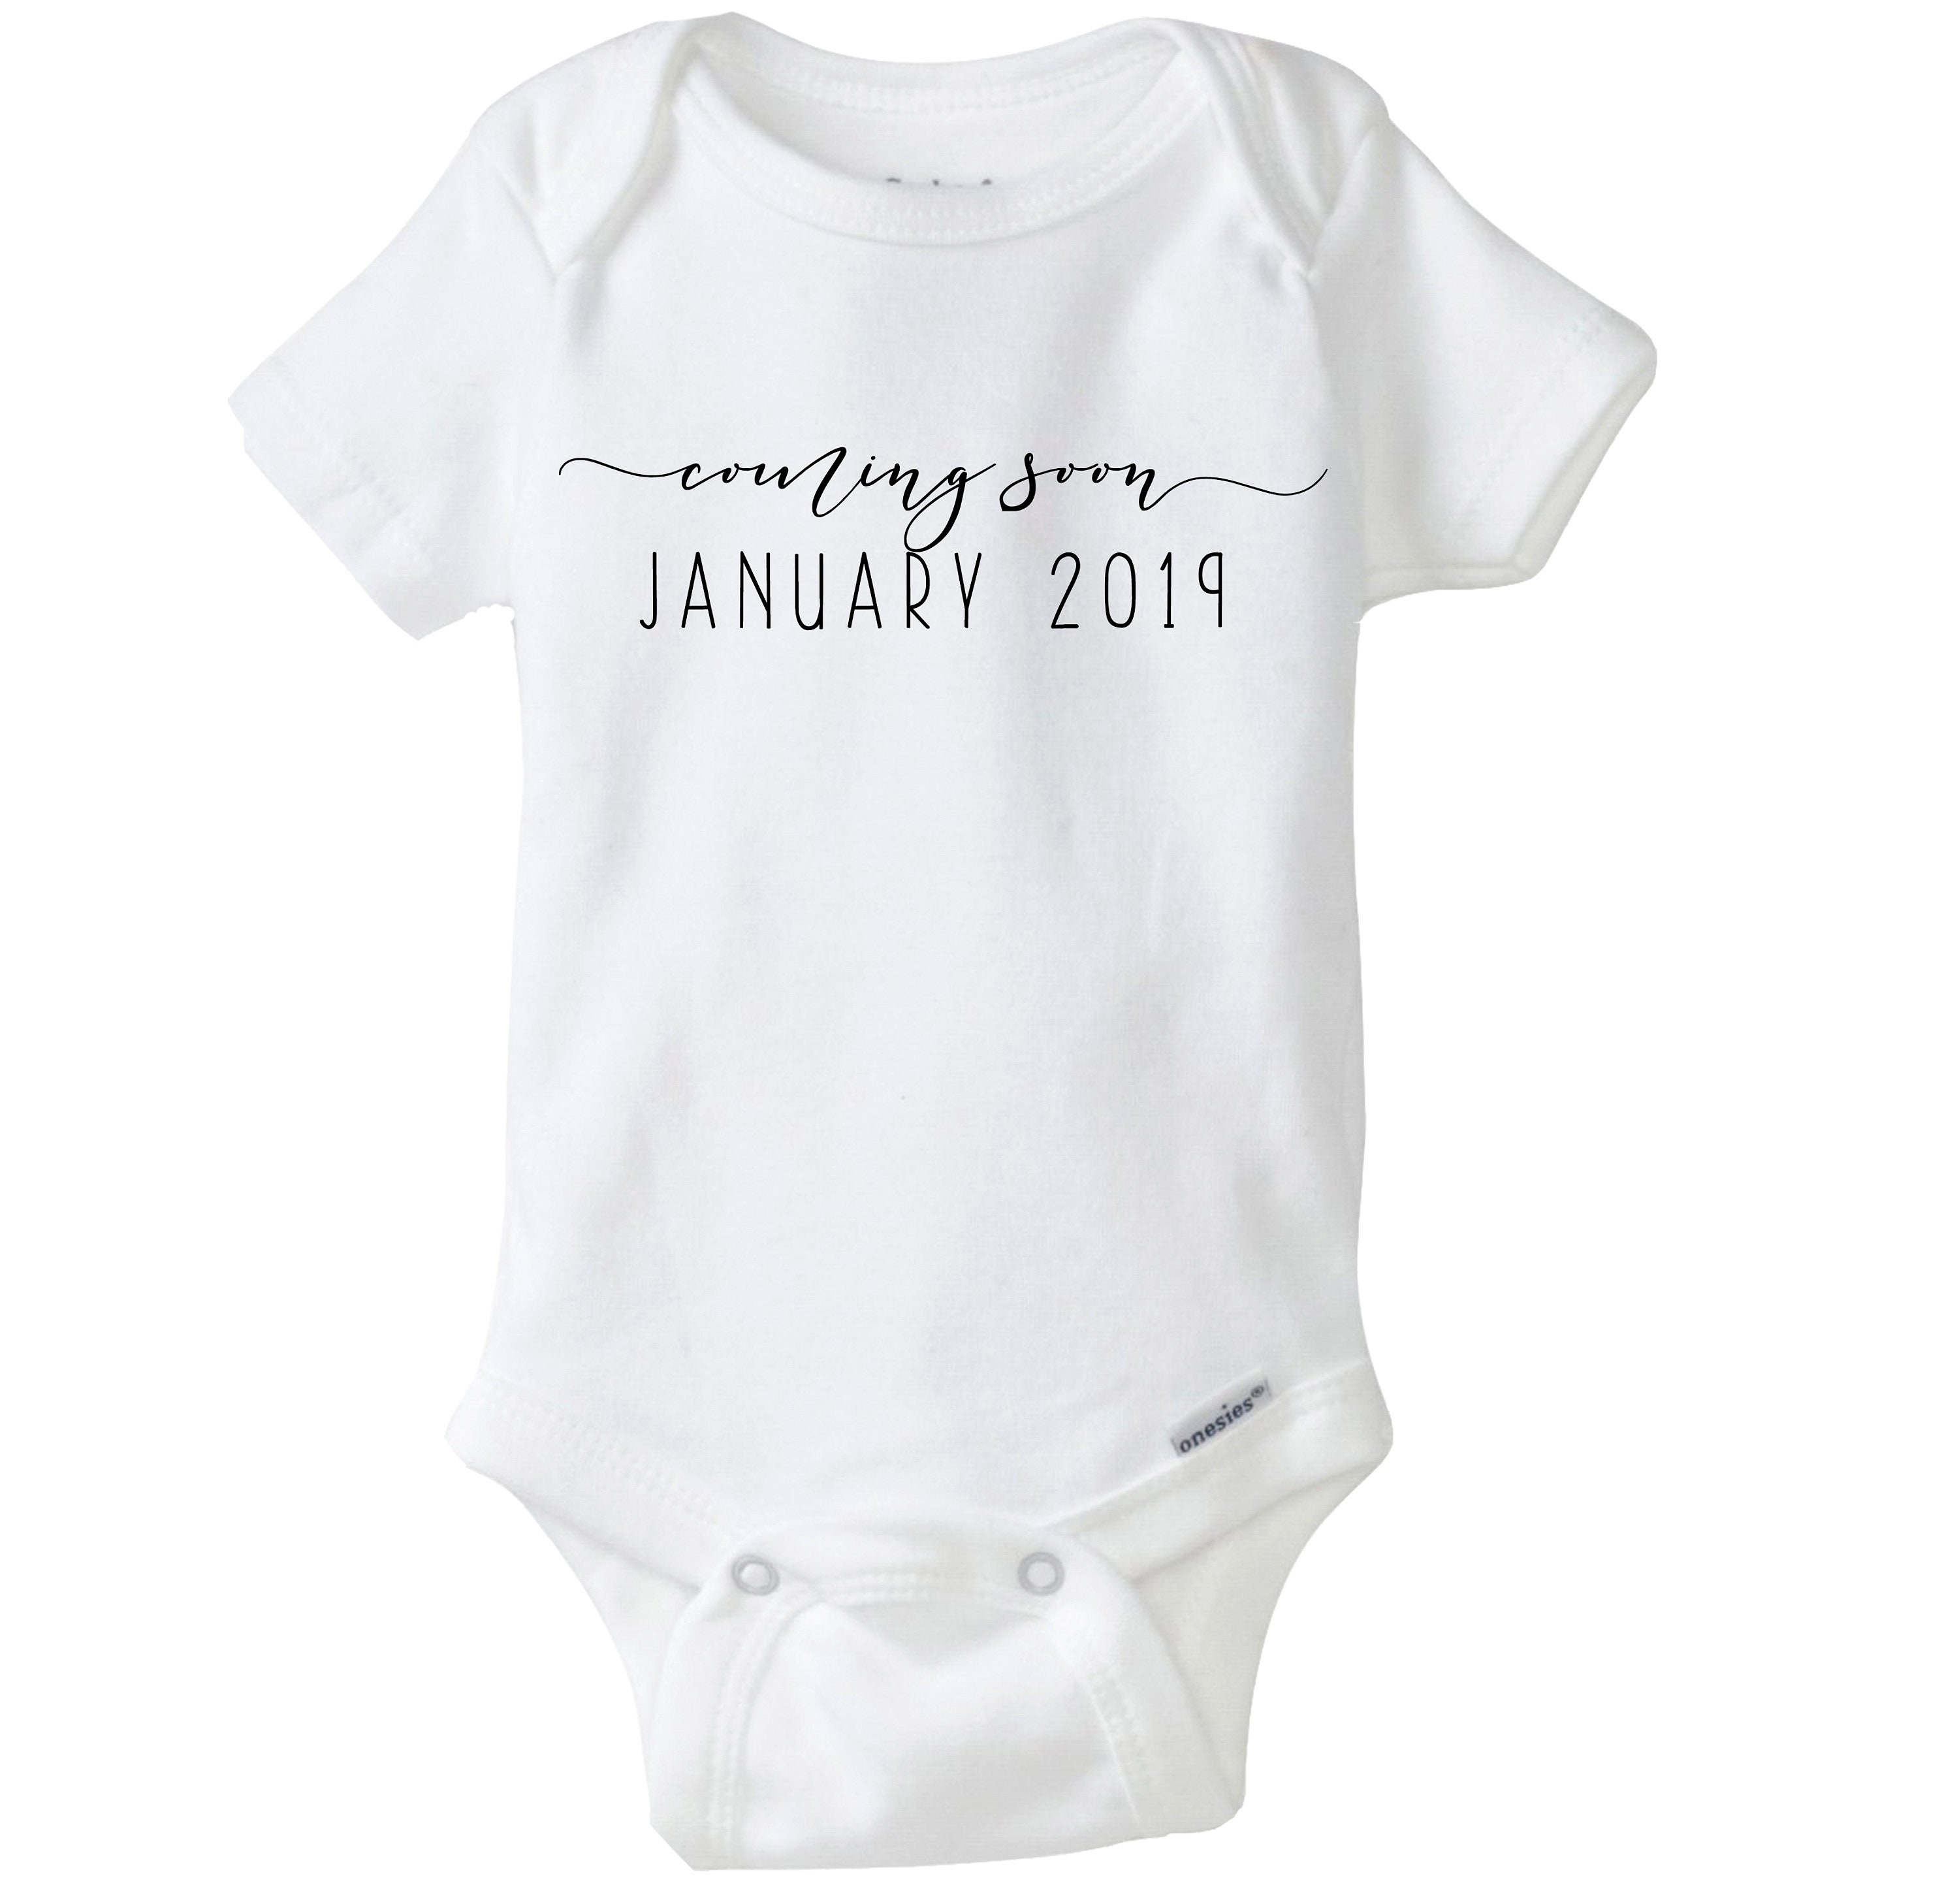 8b35b6159 Coming Soon Baby Announcement Onesies®, Pregnancy Announcement, Pregnancy  Reveal Baby Onesies®, Grandma gift, Aunt & Uncle Gift, Photo Prop